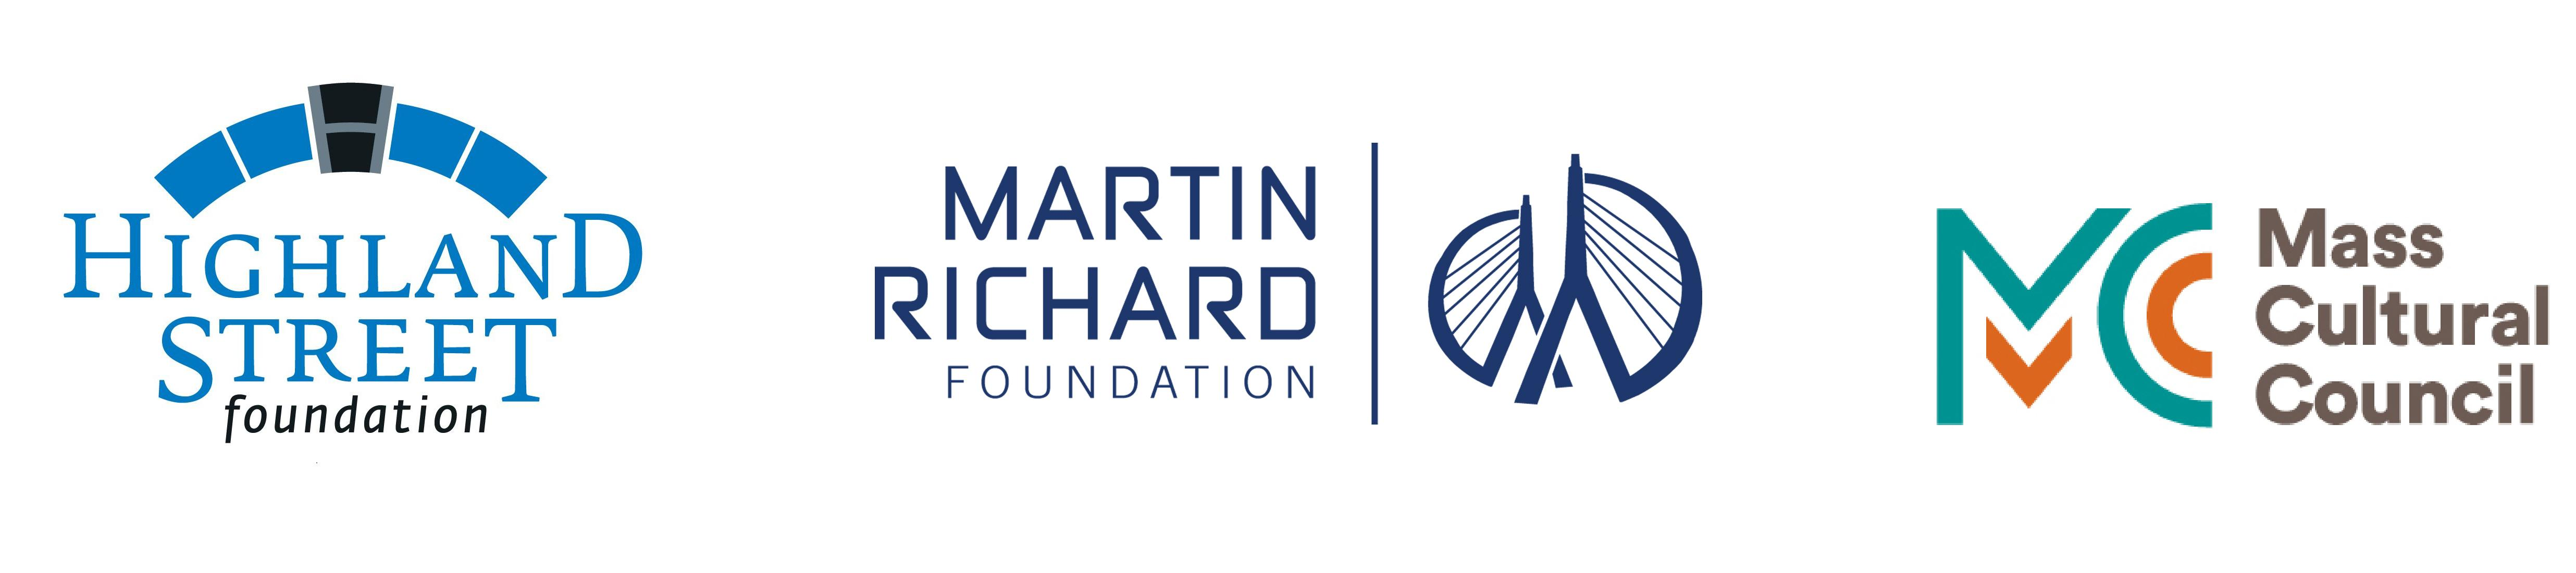 Sponsored by the Highland Street Foundation, the Martin Richard Foundation, and the Mass Cultural Council